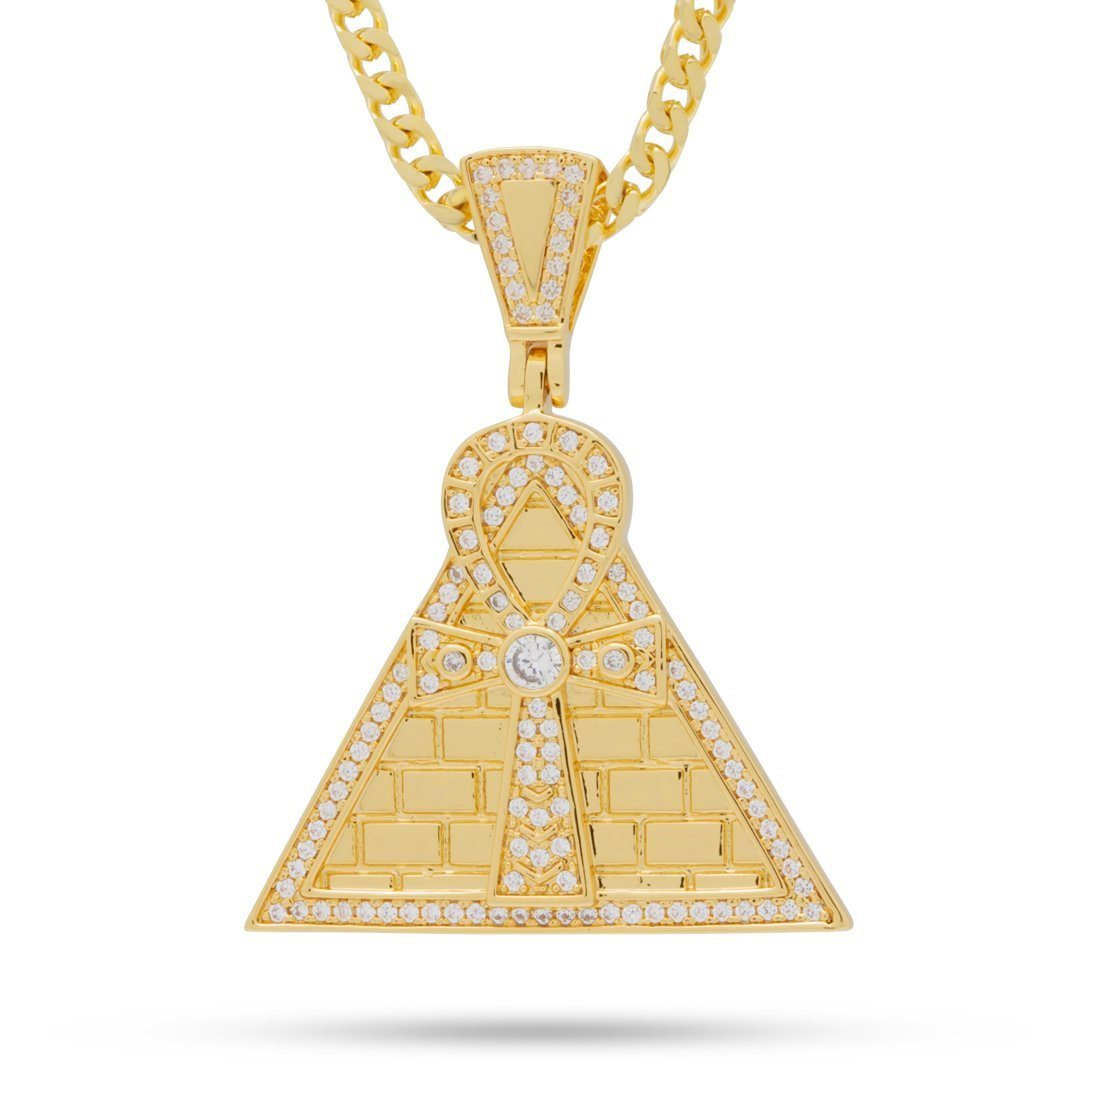 The Ankh Pyramid Necklace